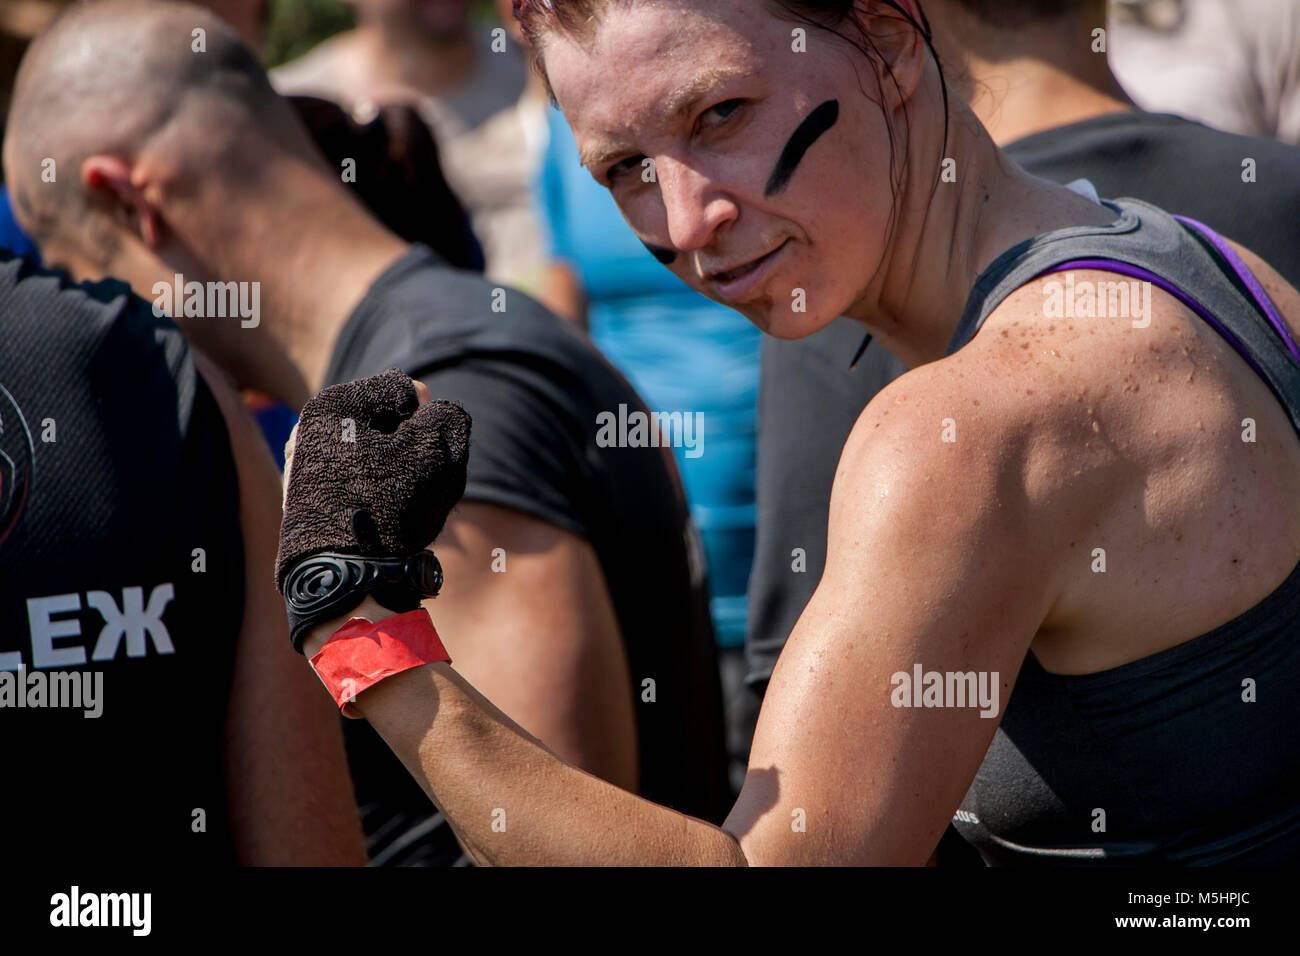 A woman is showing her muscles during physical competition Legion Run held in Sofia, Bulgaria on 26 July 2014 - Stock Image